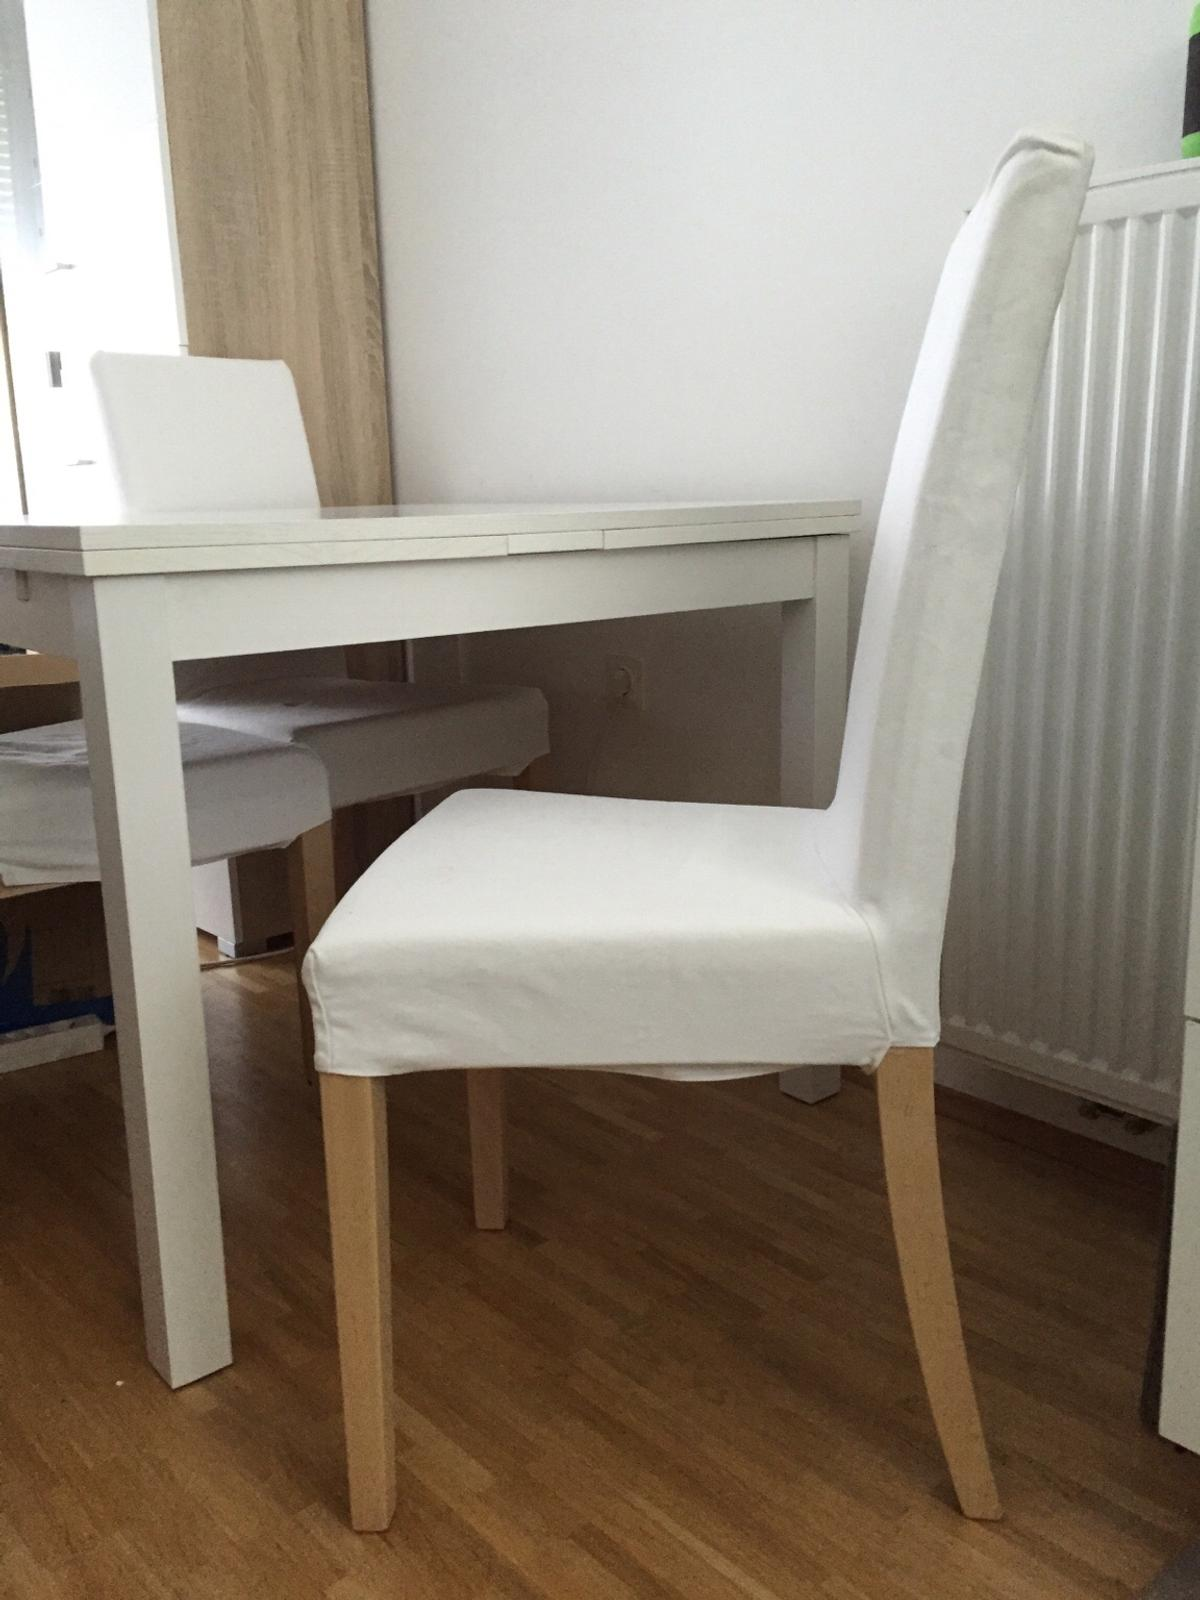 Ikea Esstisch Sessel Esstisch Bjursta 3 Sessel Harry Vom Ikea In 8020 Graz For